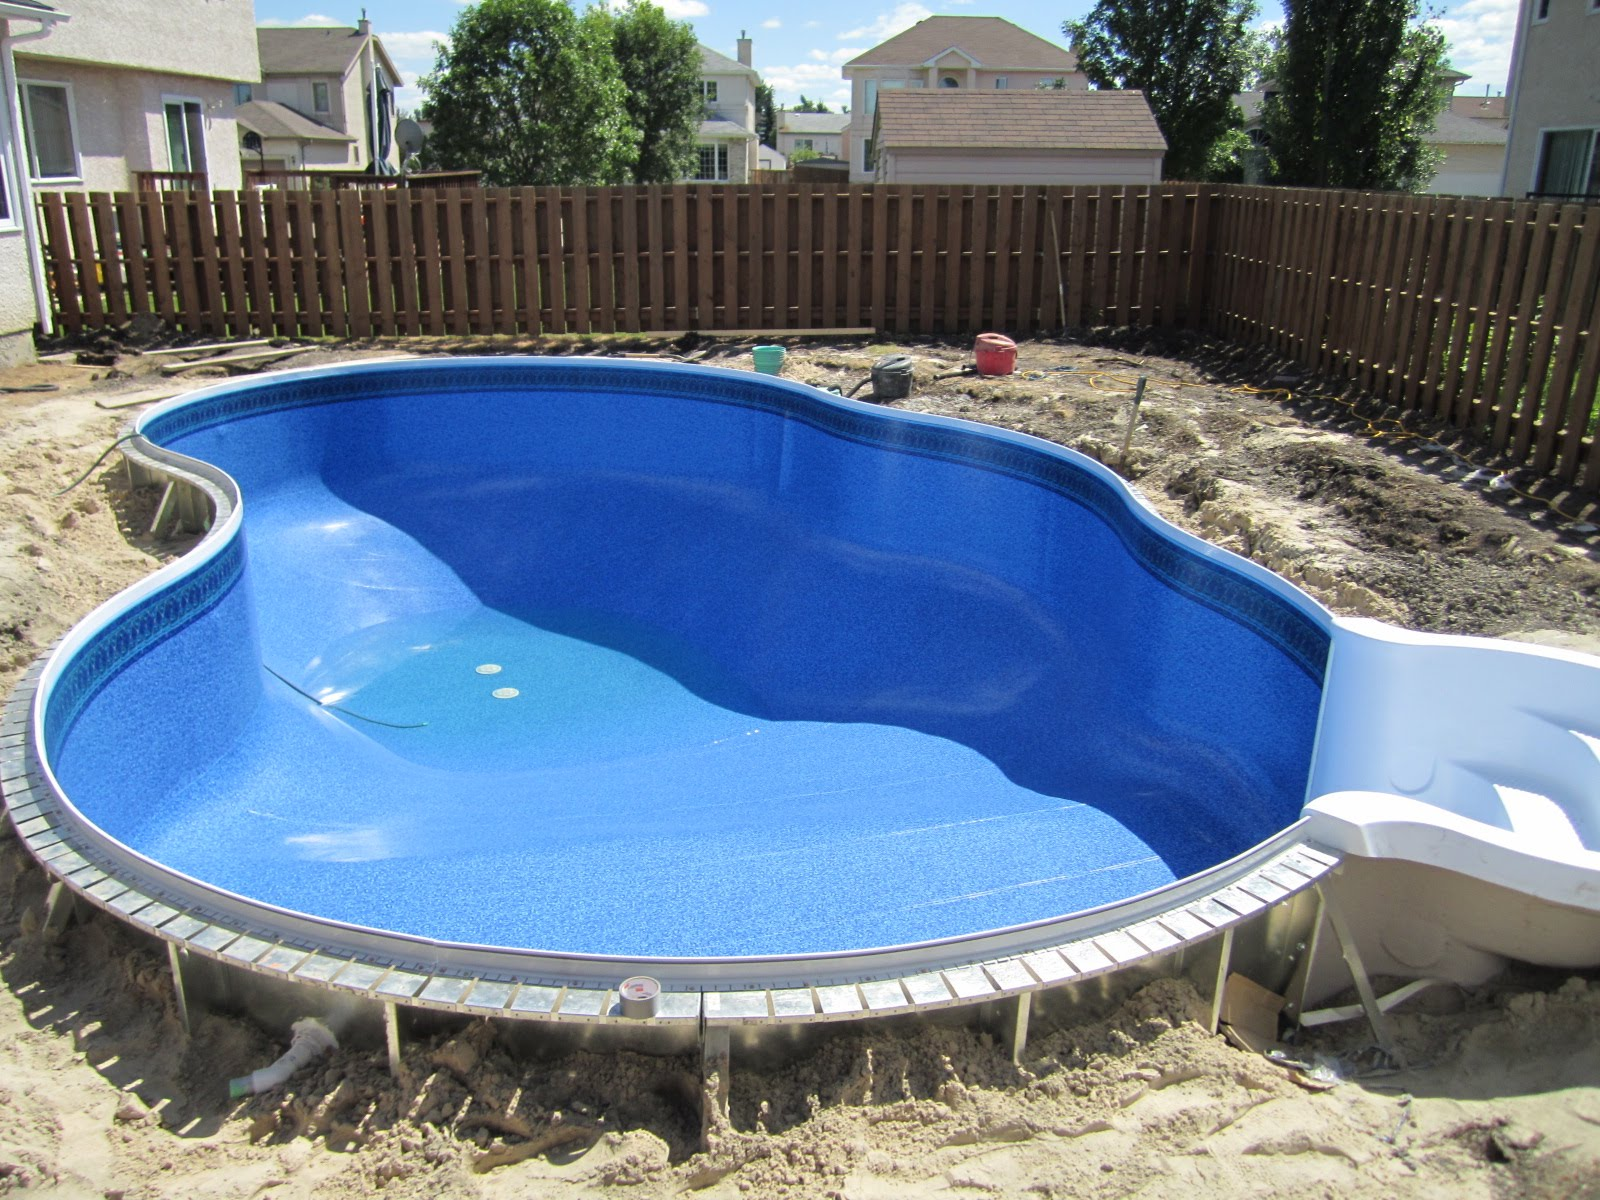 Pictures of 16x32 inground pool joy studio design for Pool design studio